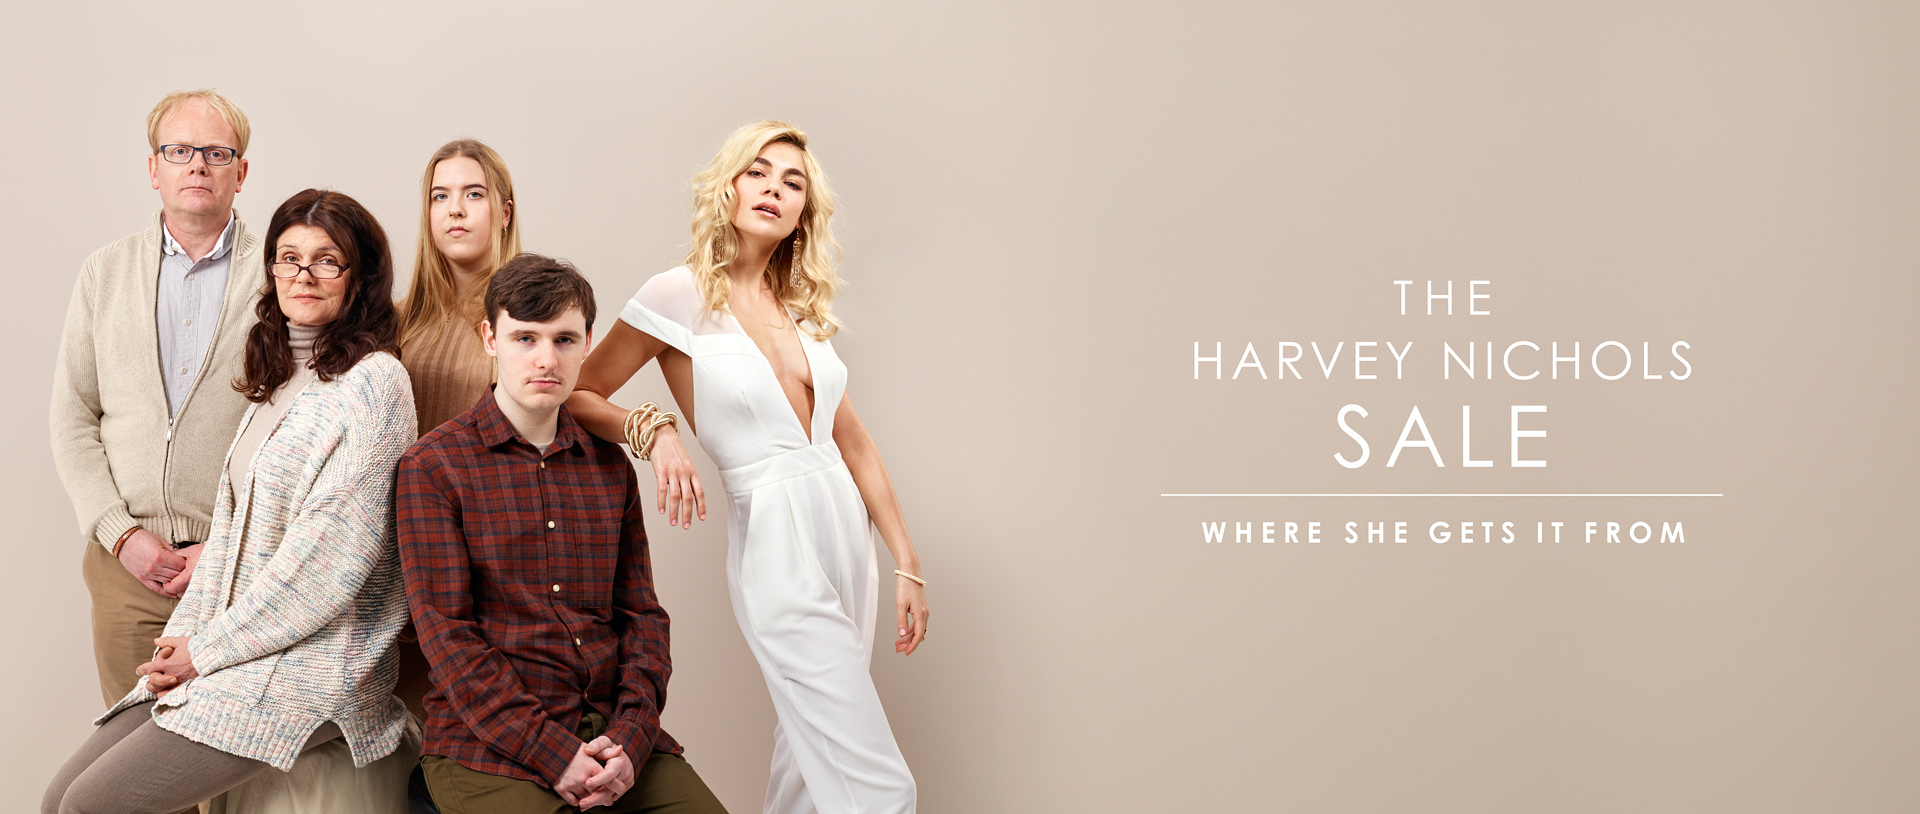 Harvey_Nichols_Girl